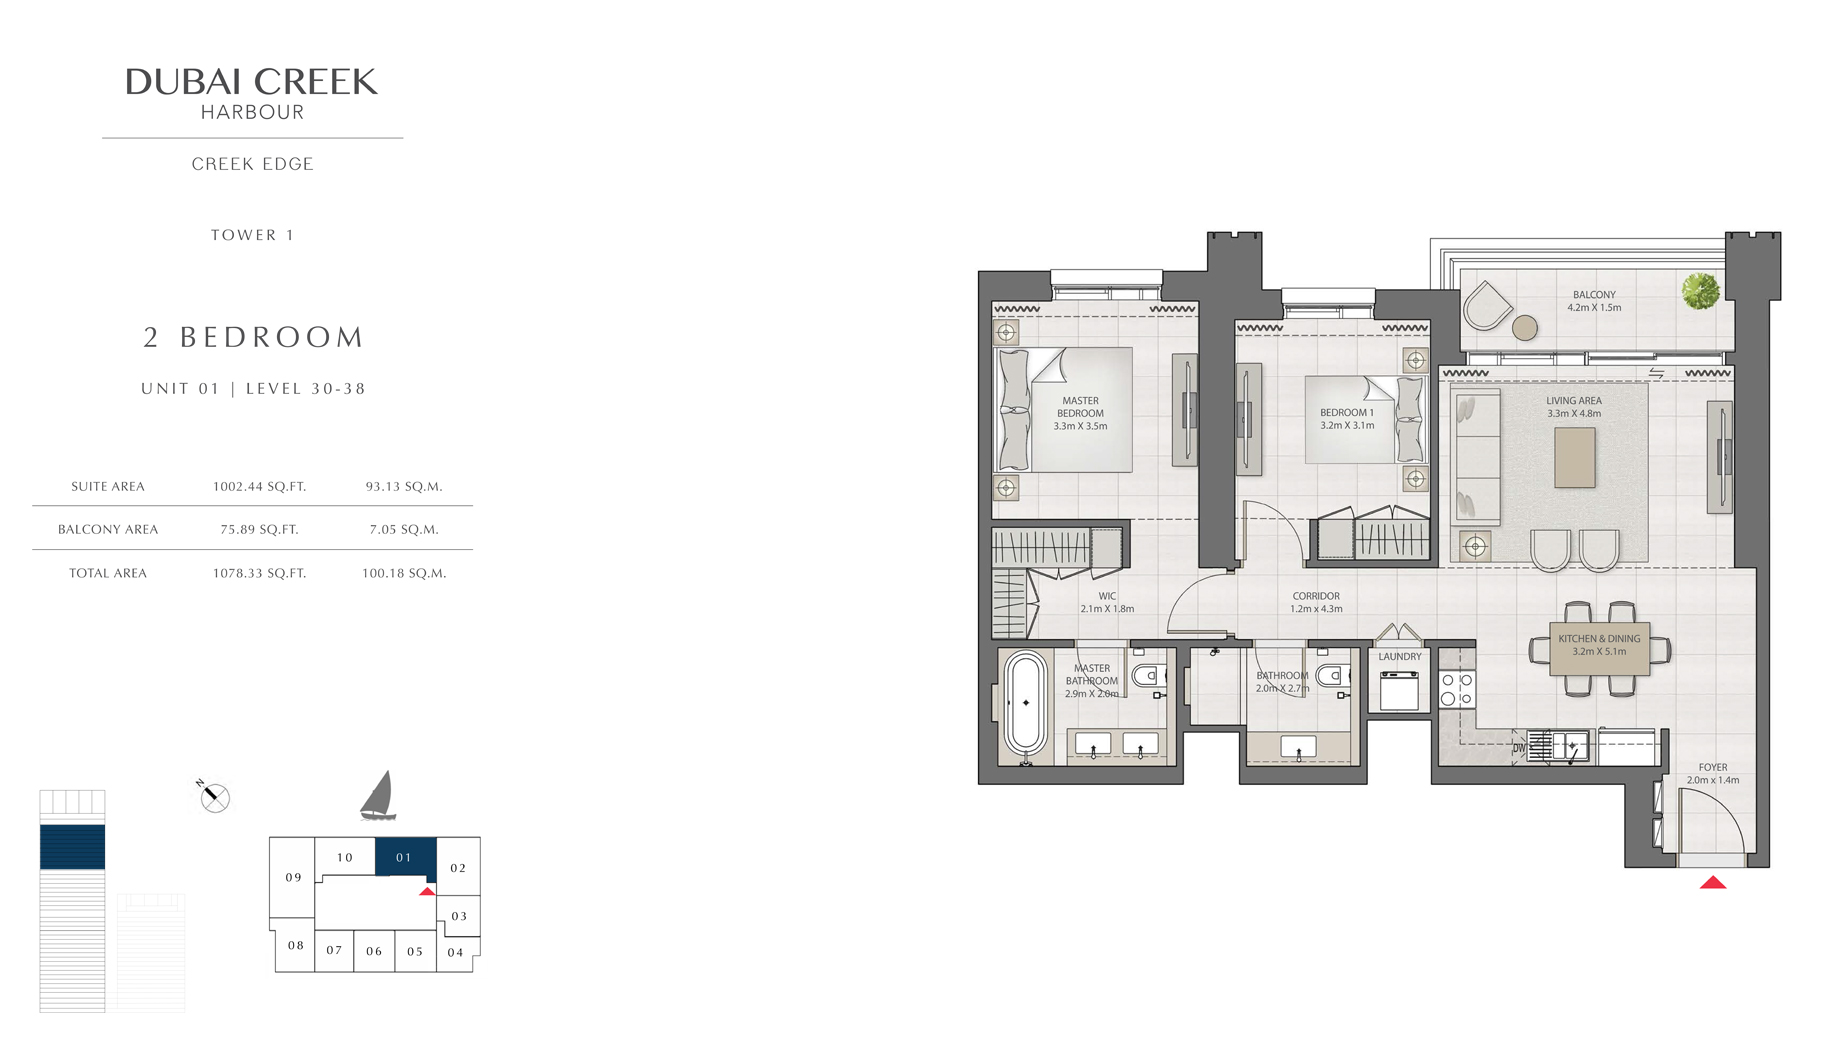 2 Bedroom Tower 1 Unit 1 Level 30-38 Size 1078 sq.ft